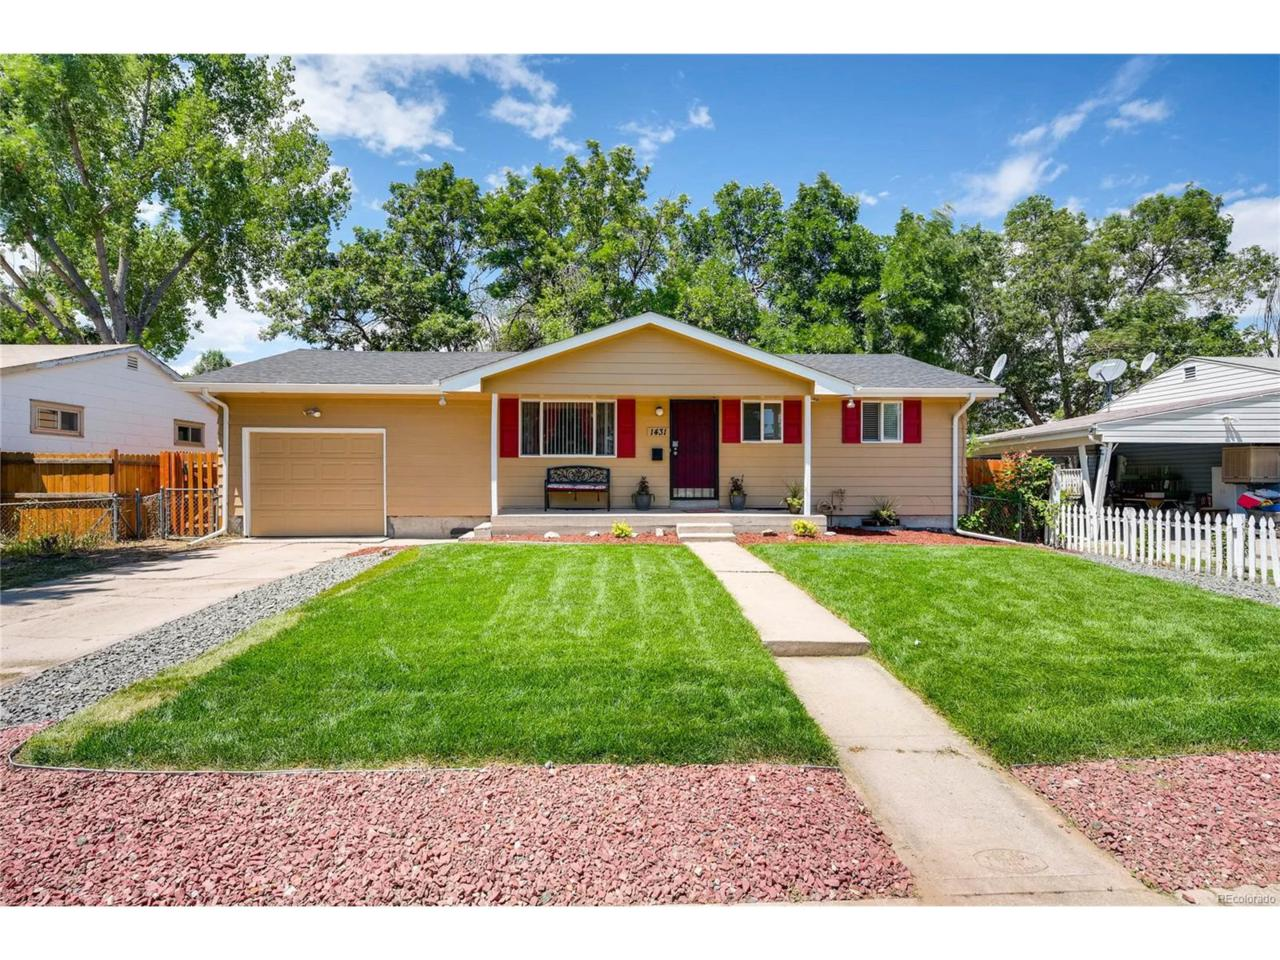 1431 S Newton Street, Denver, CO 80219 (MLS #9458126) :: 8z Real Estate